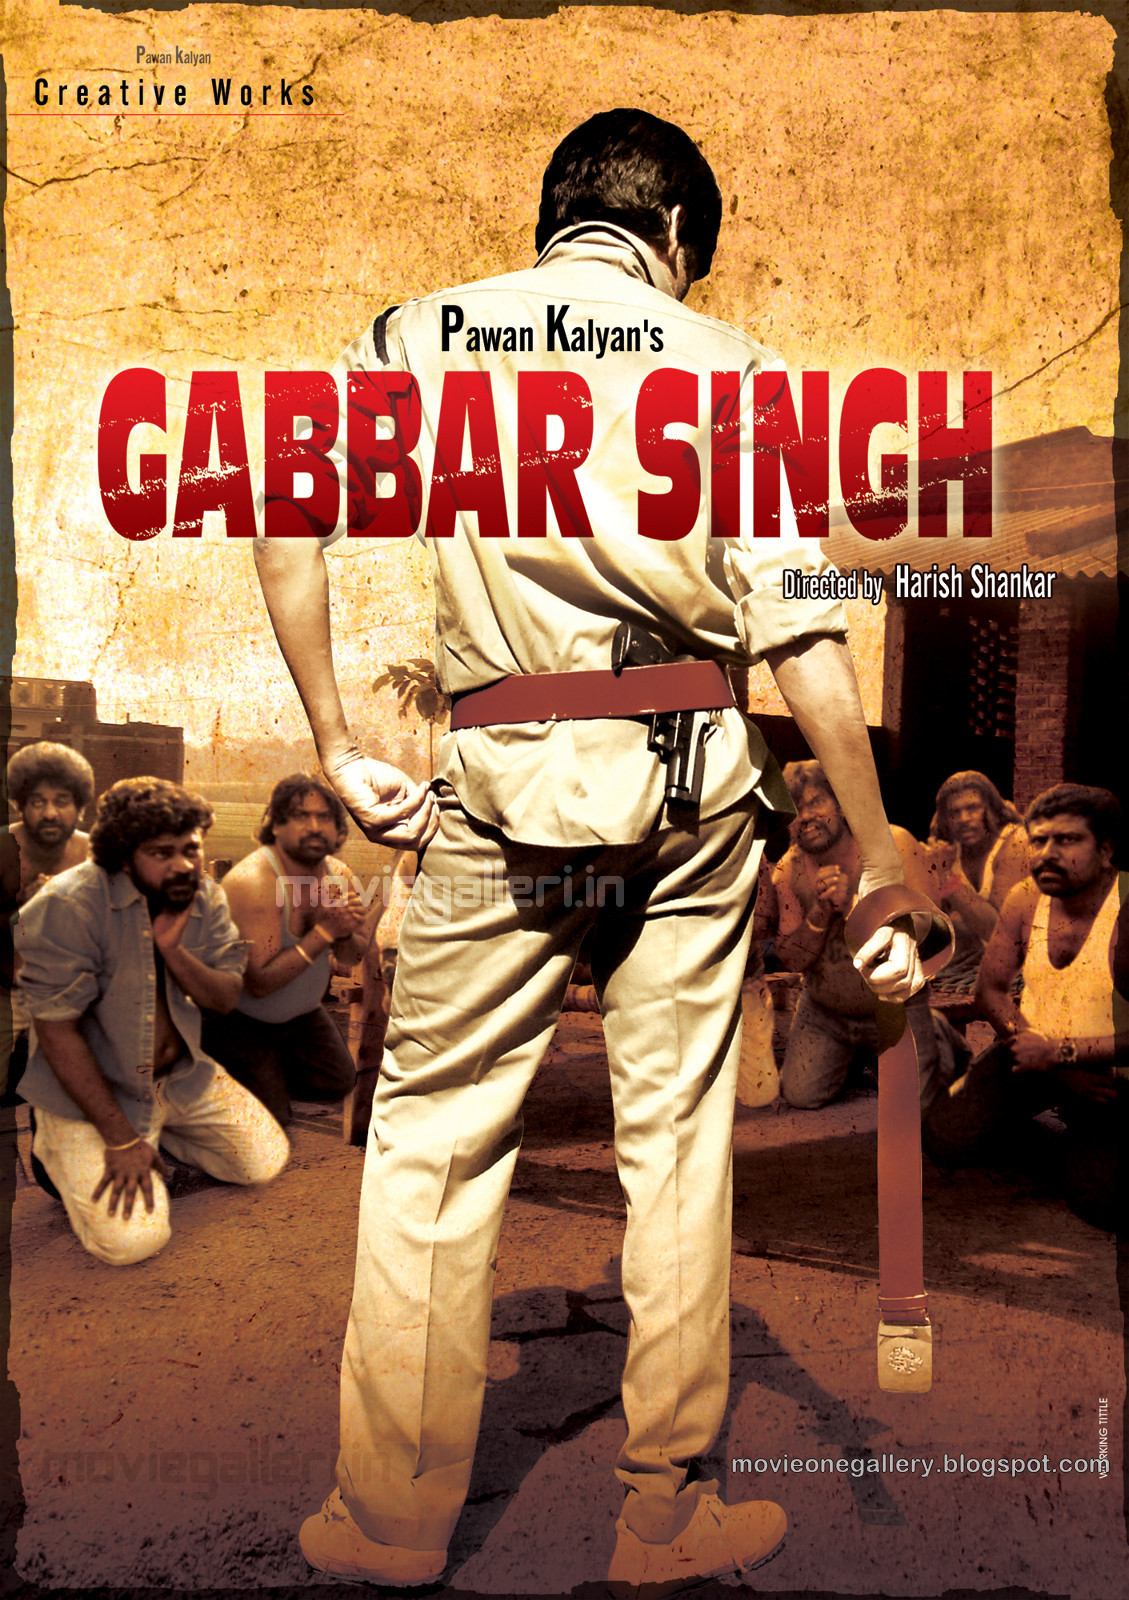 Best Wallpaper Name Thakur - pawan_kalyan_gabbar_singh_movie_posters_01  2018_173331.JPG